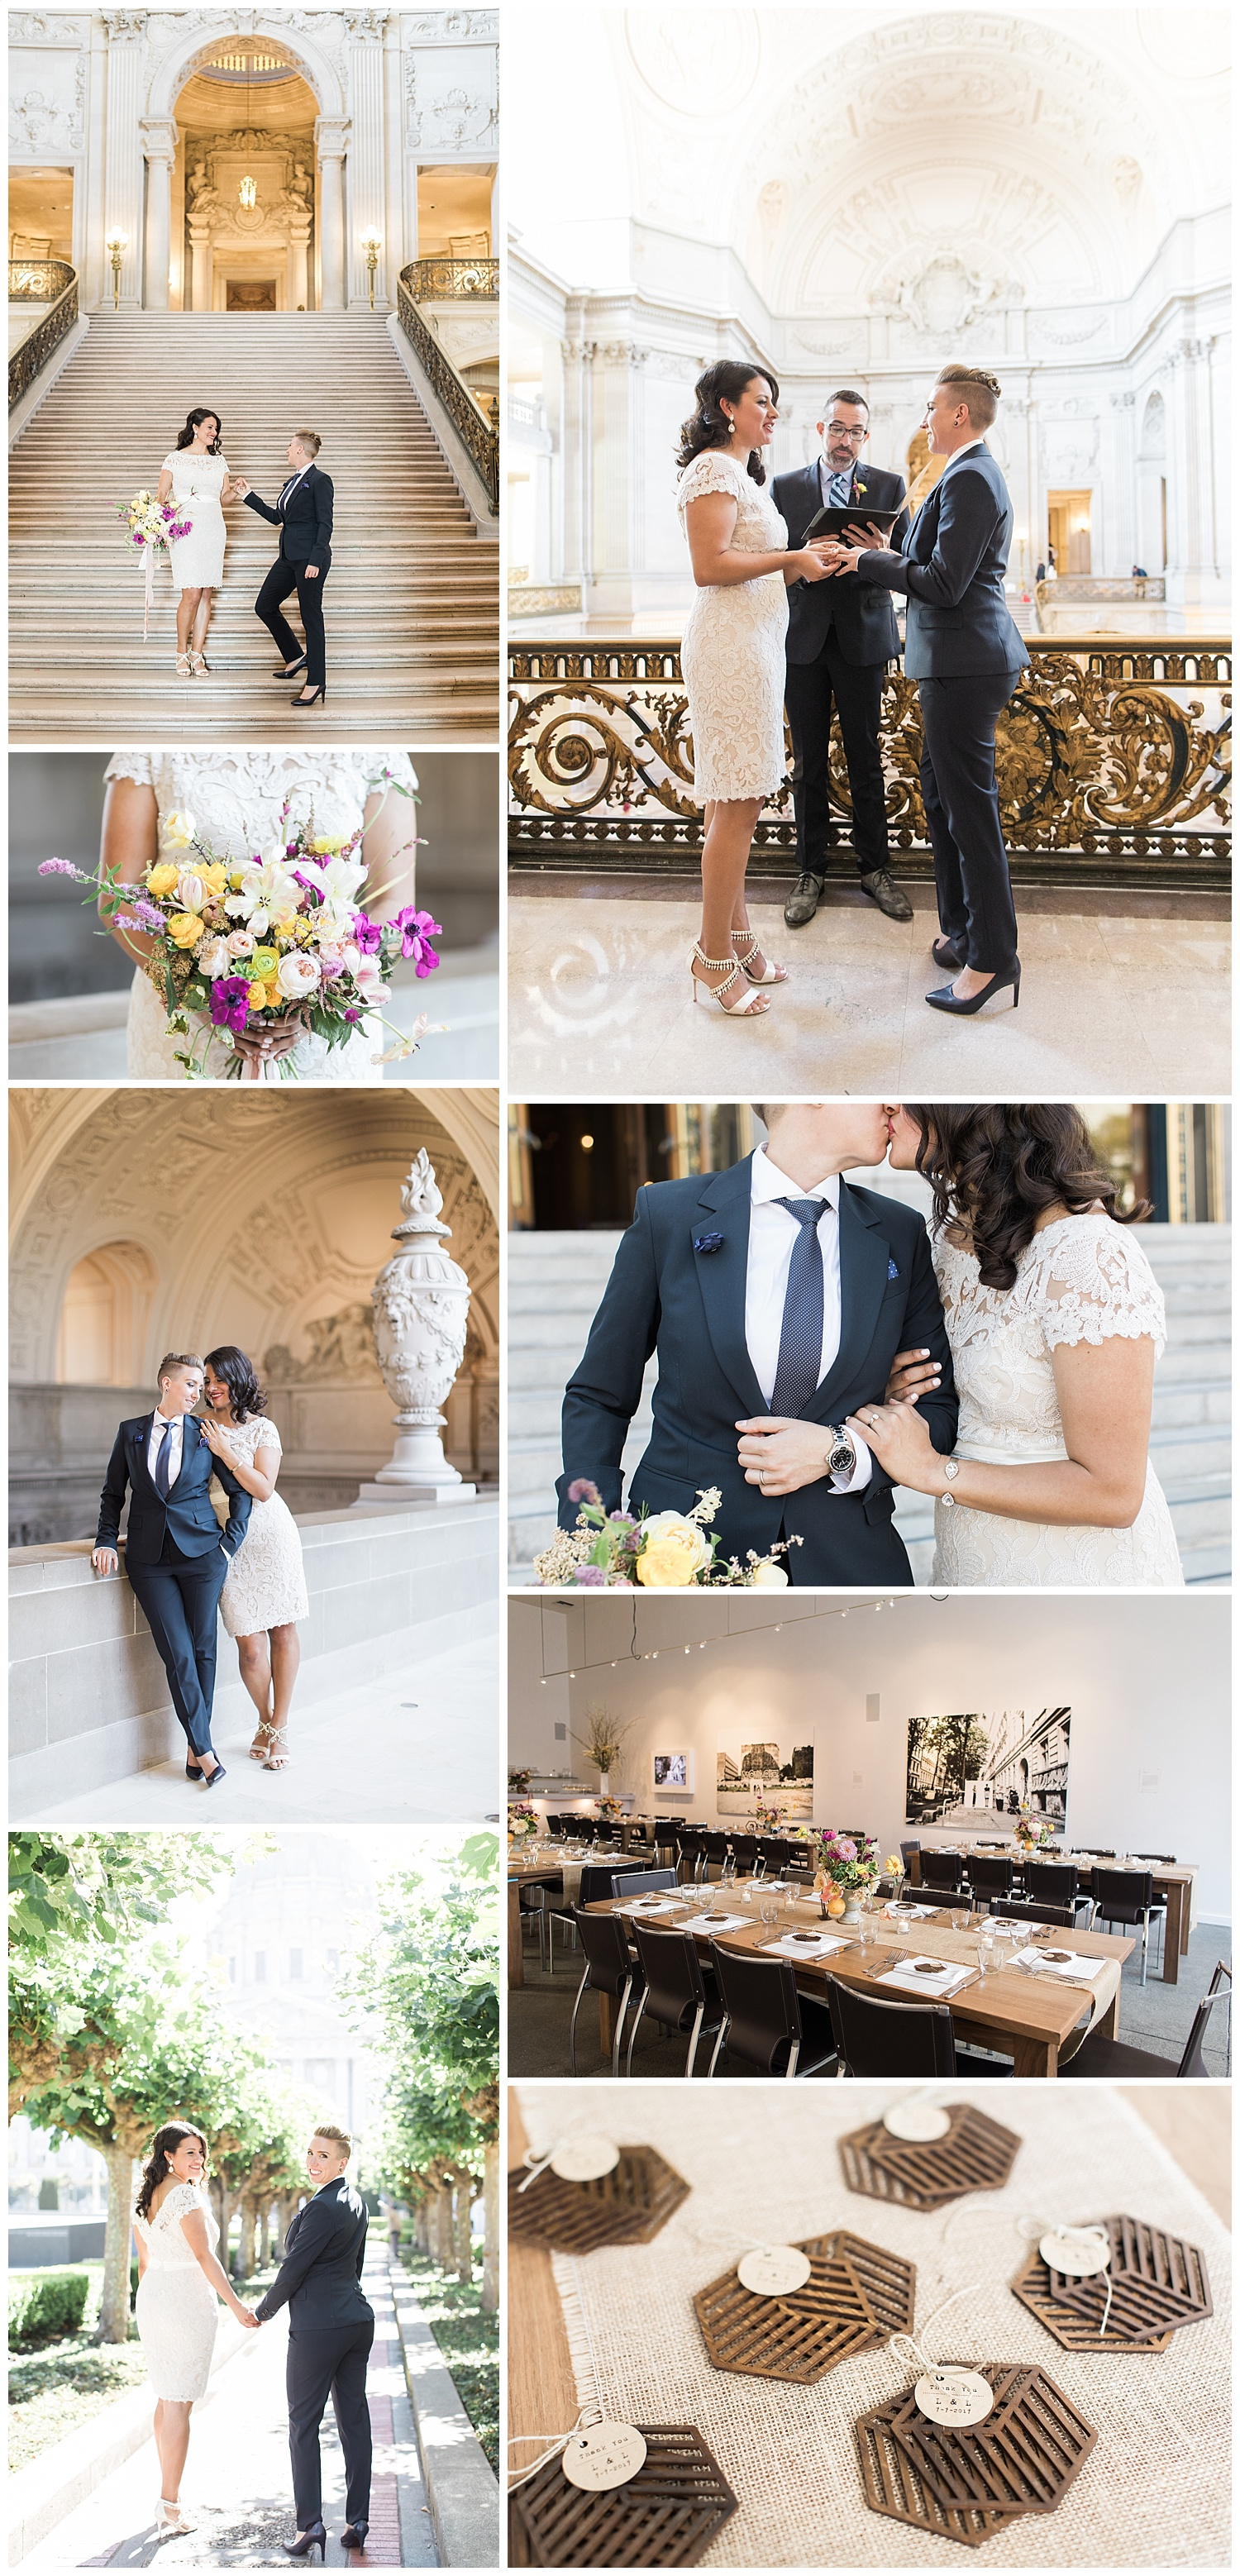 Their day was captured beautifully by Amanda Wei of Blueberry Photography